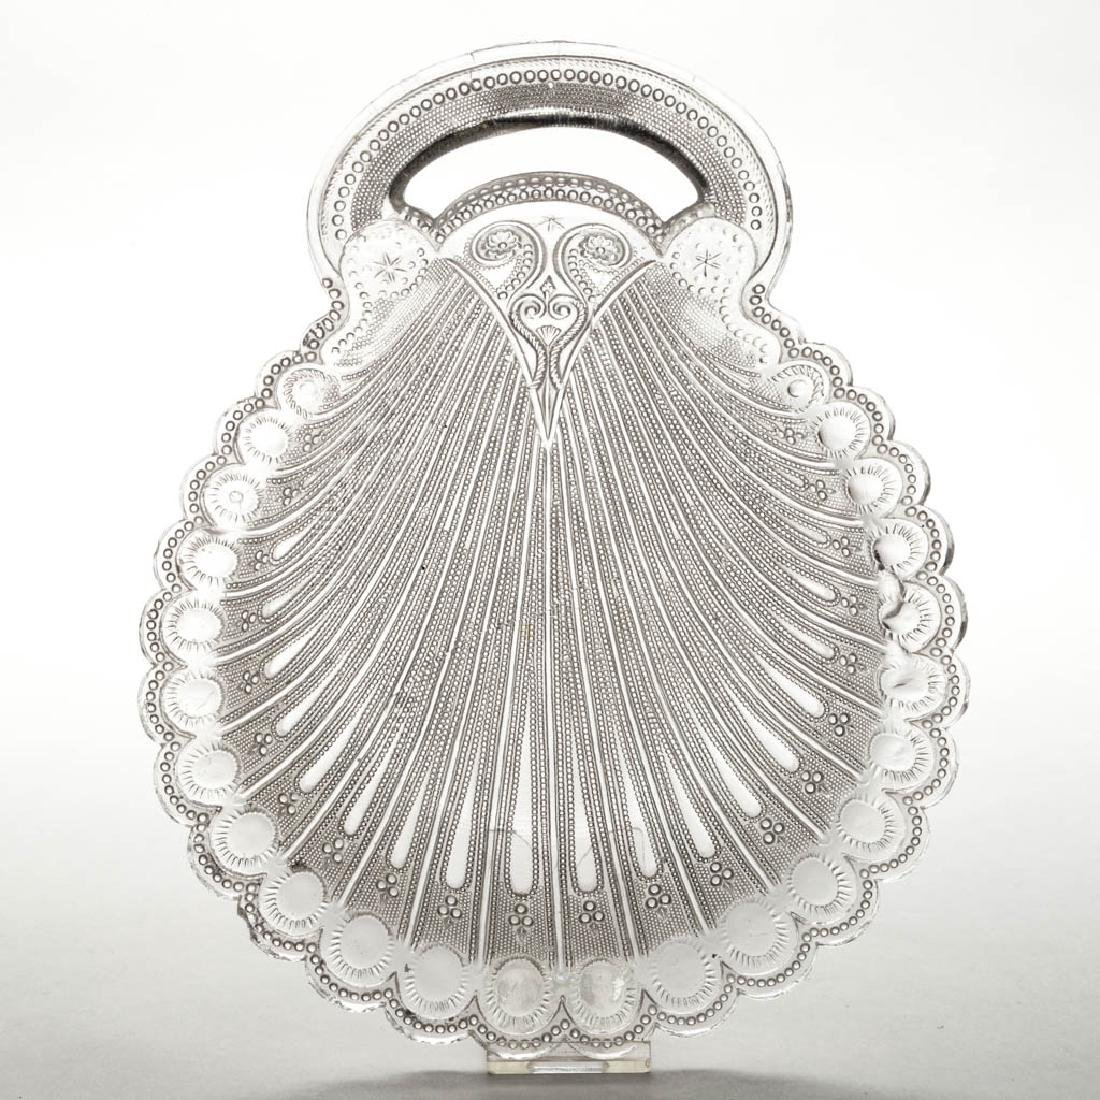 PRESSED LACY PEACOCK EYE SHELL-SHAPED DISH WITH OPEN